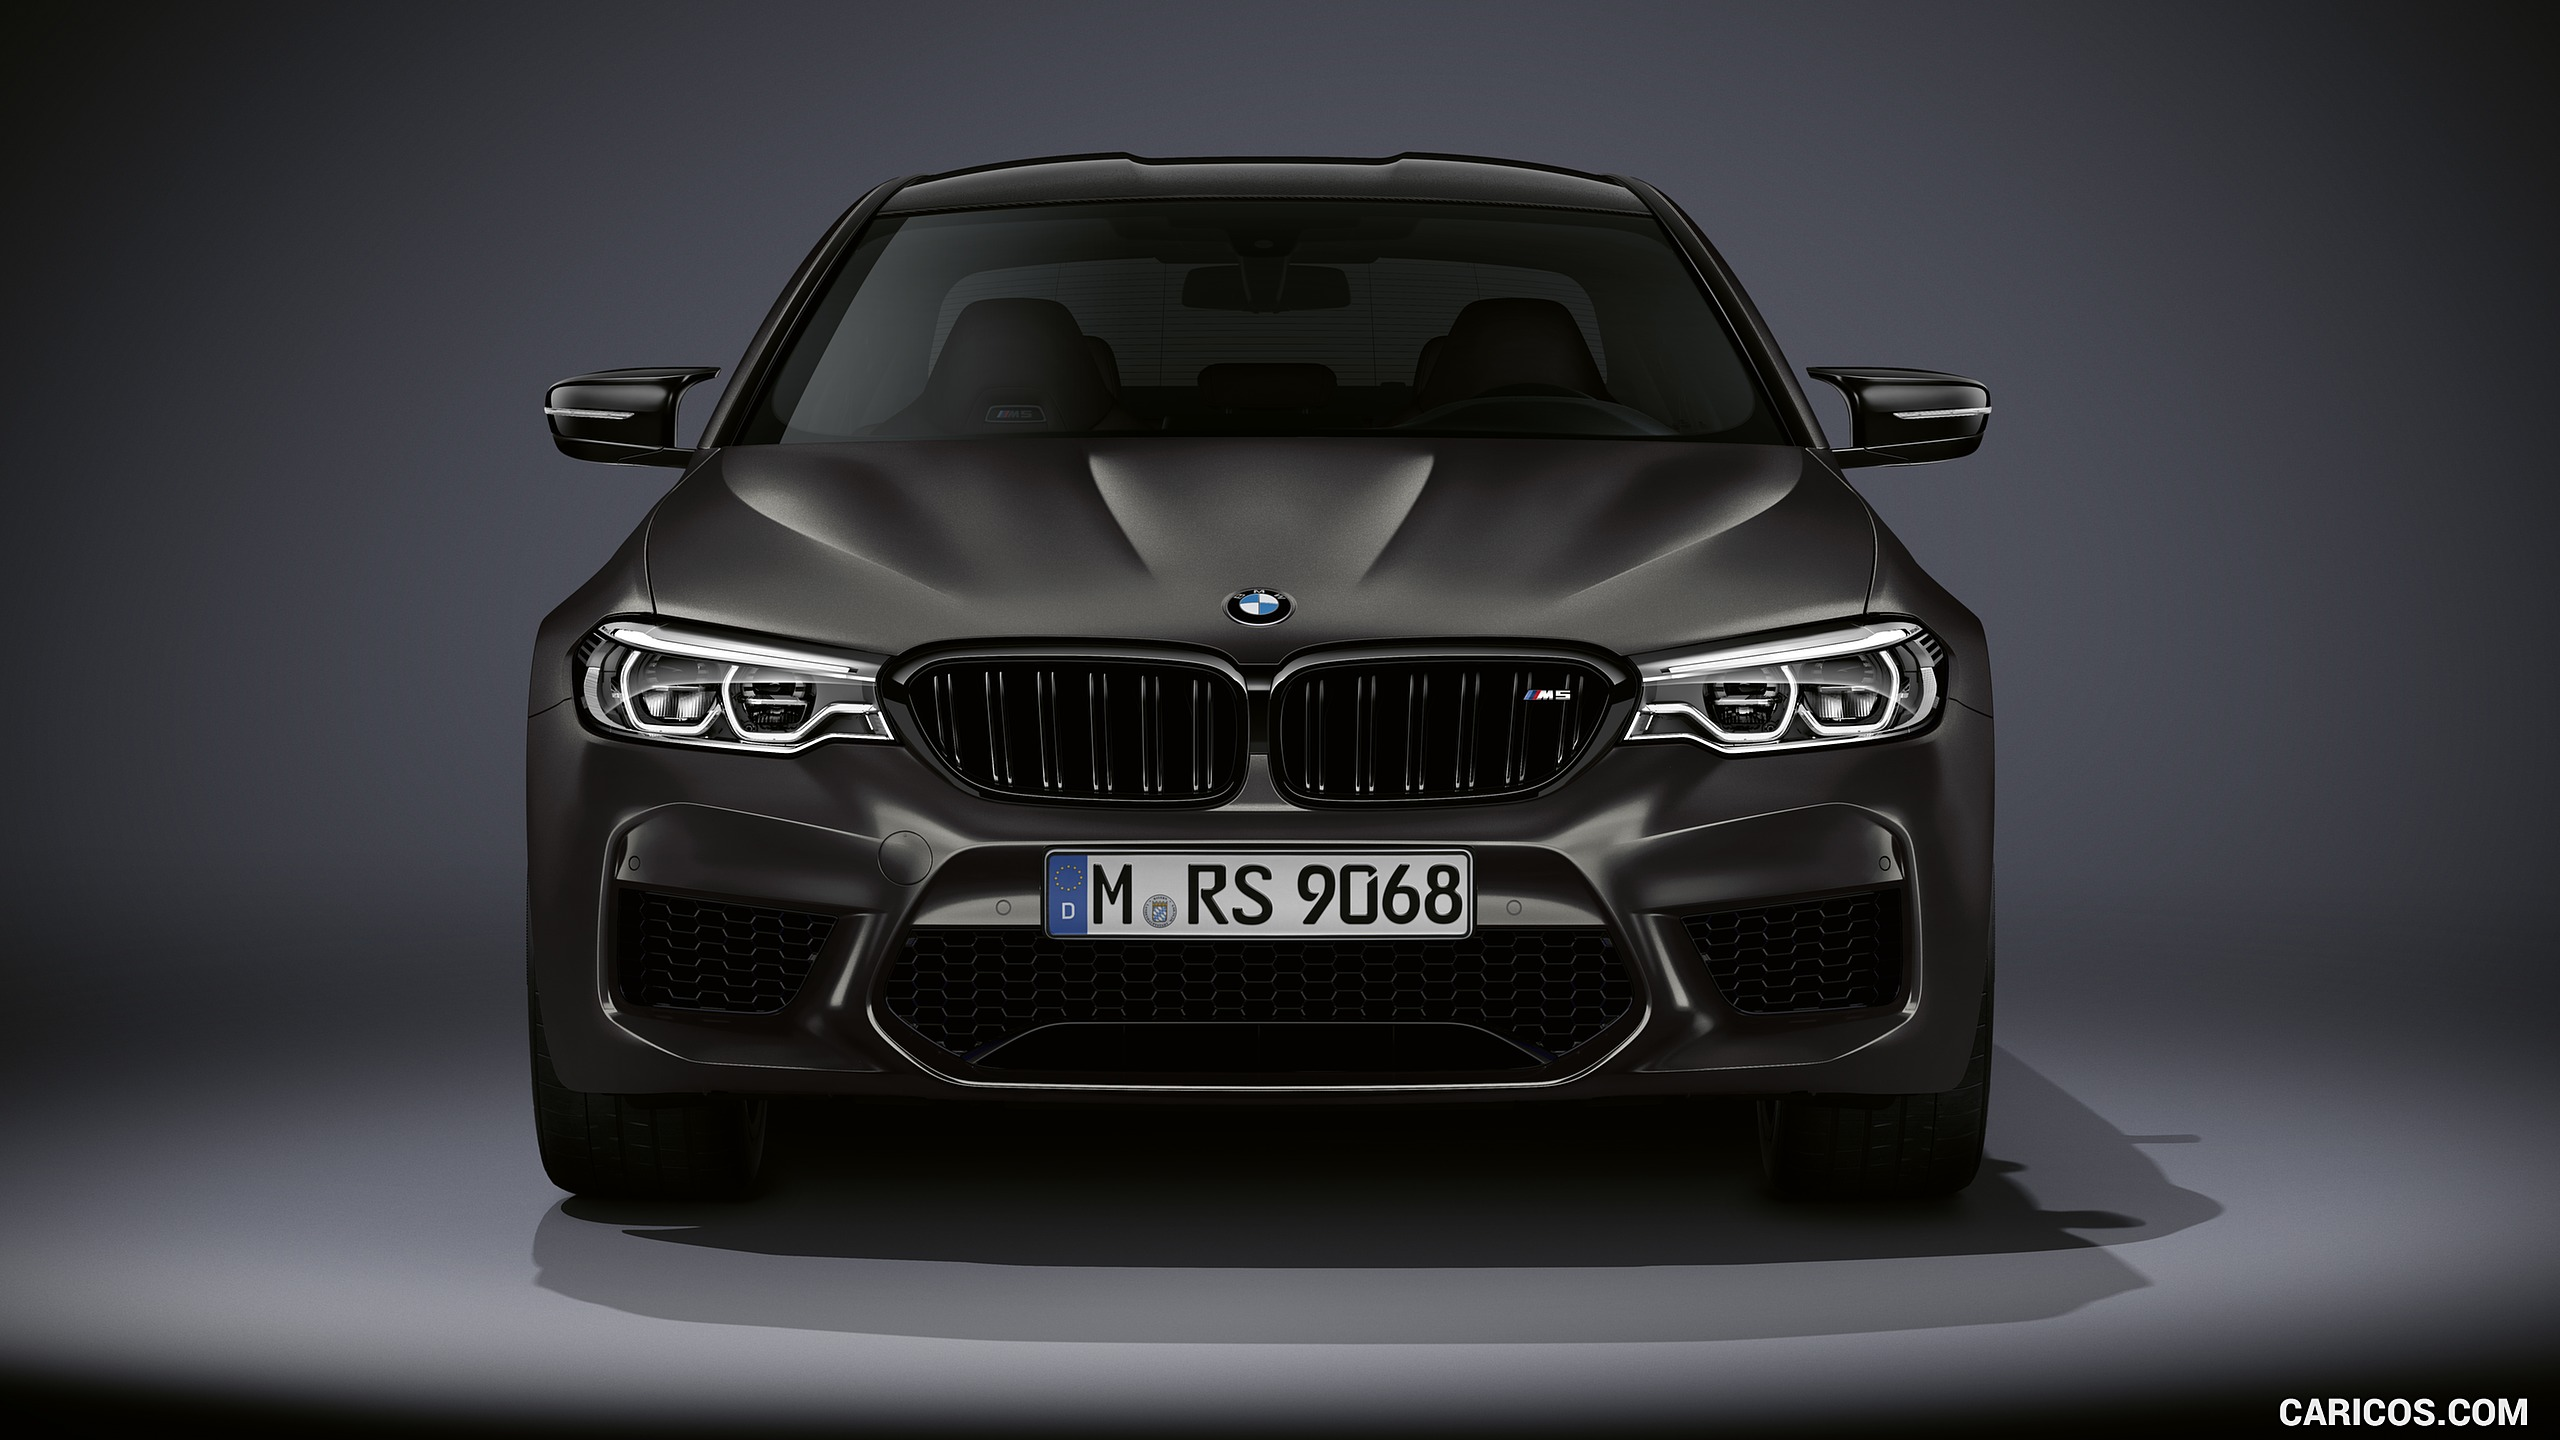 2020 BMW M5 Edition 35 Years   Front HD Wallpaper 6 2560x1440